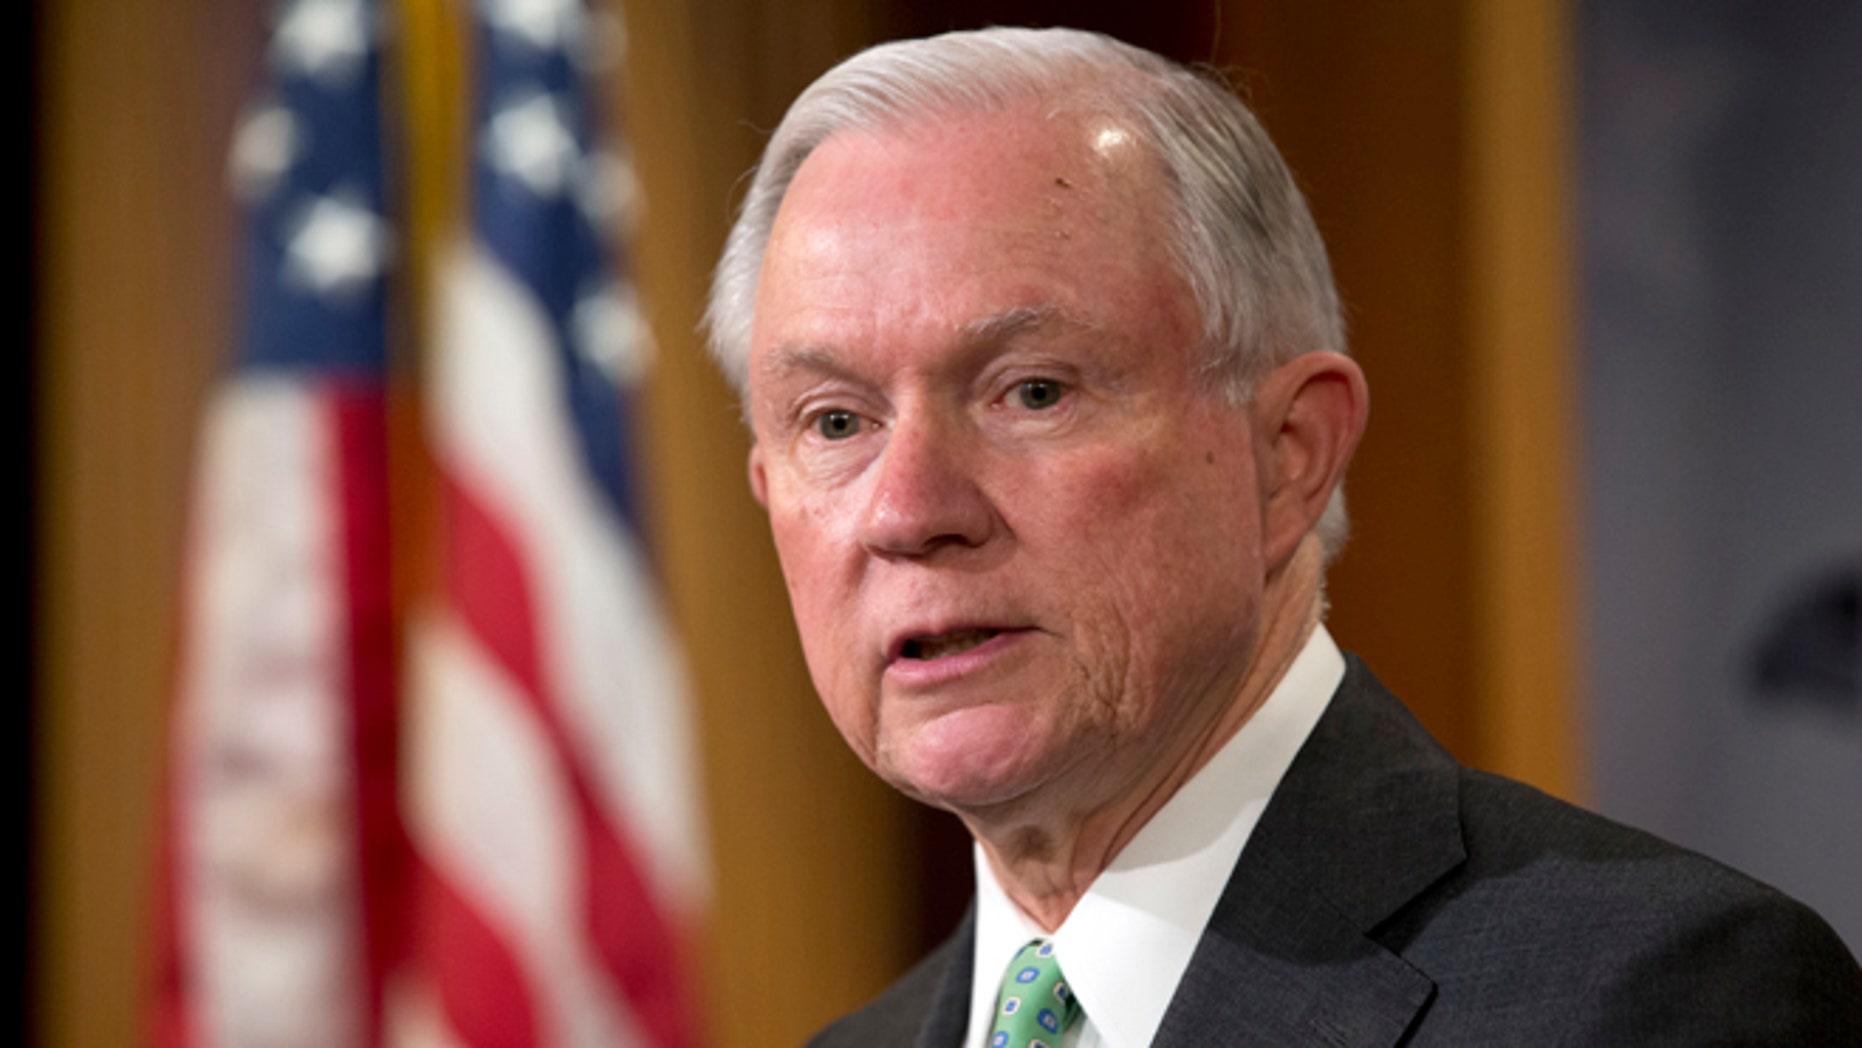 Sen. Jeff Sessions during a news conference on Capitol Hill on June 23, 2016.